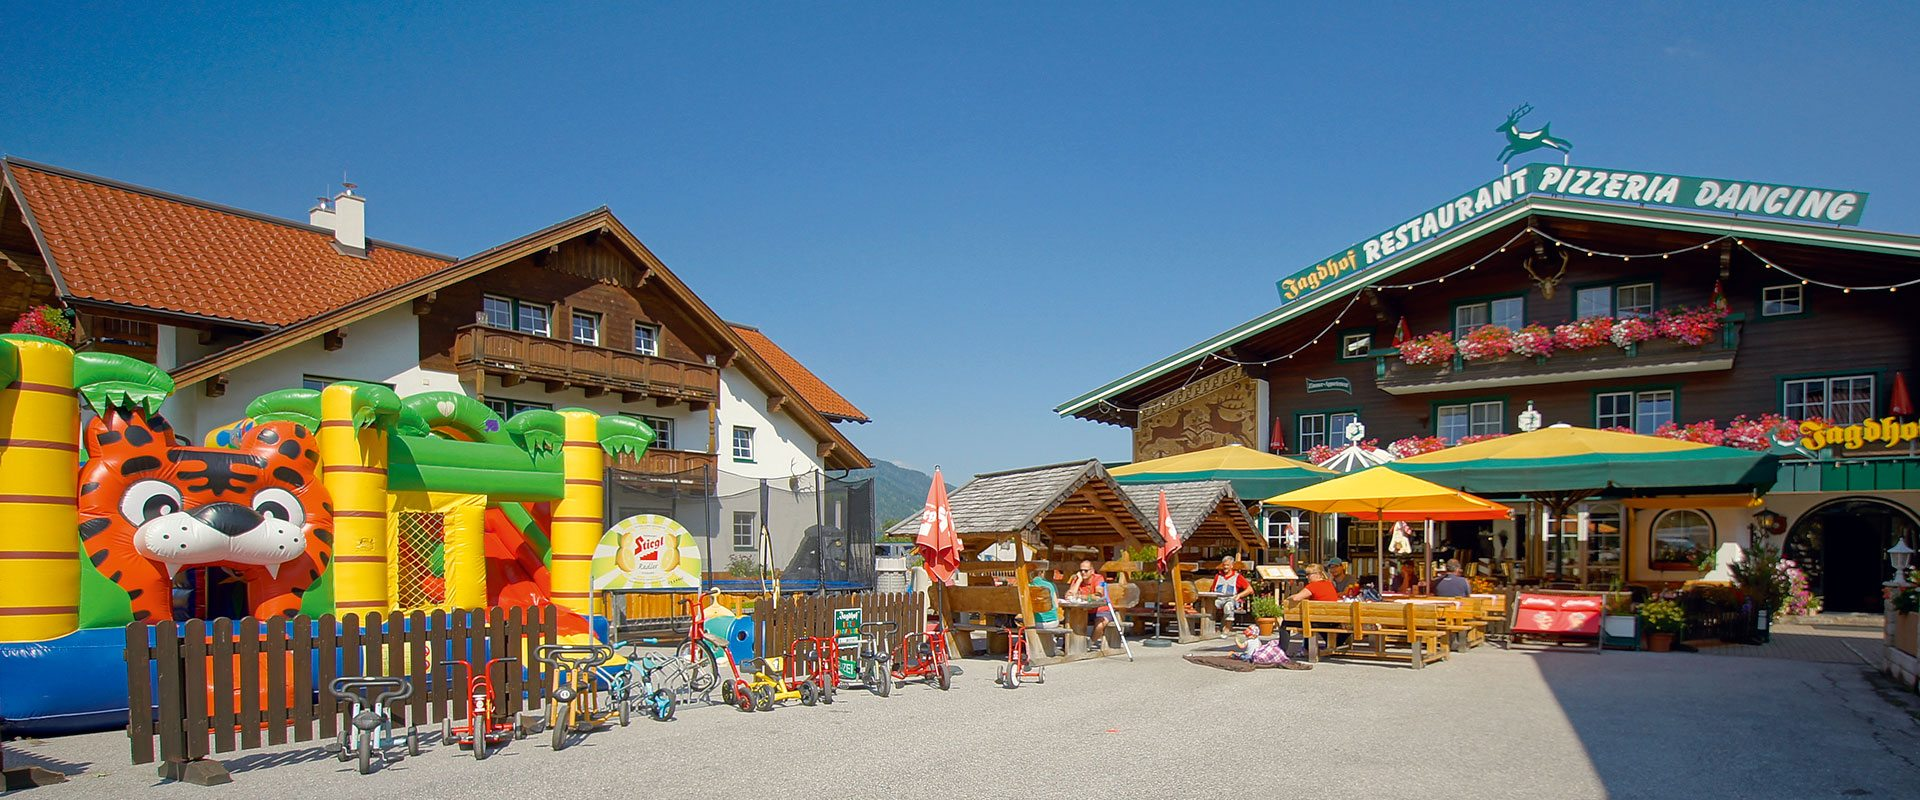 Restaurant, Pizzeria, Kinderwirt & Take-away Jagdhof, Restaurant in Flachau